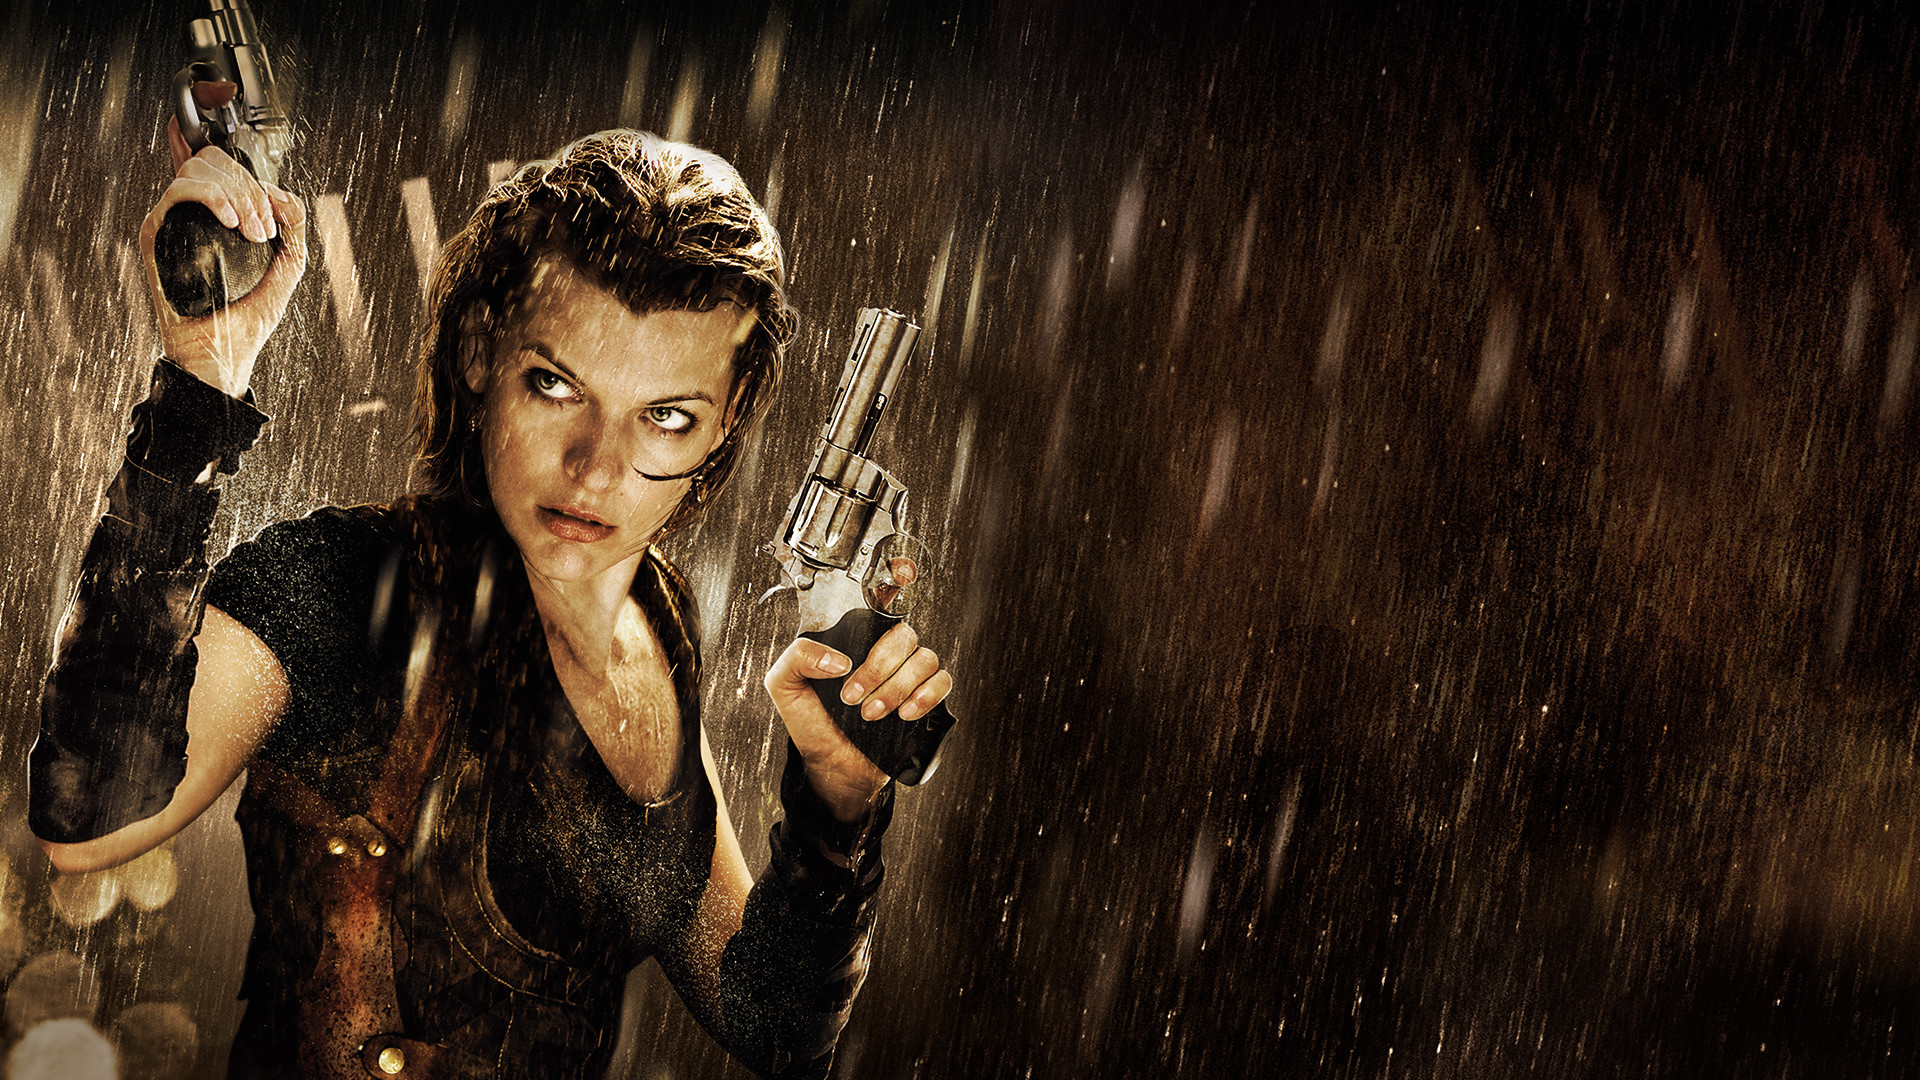 Resident Evil Afterlife Wallpapers Photos Images in